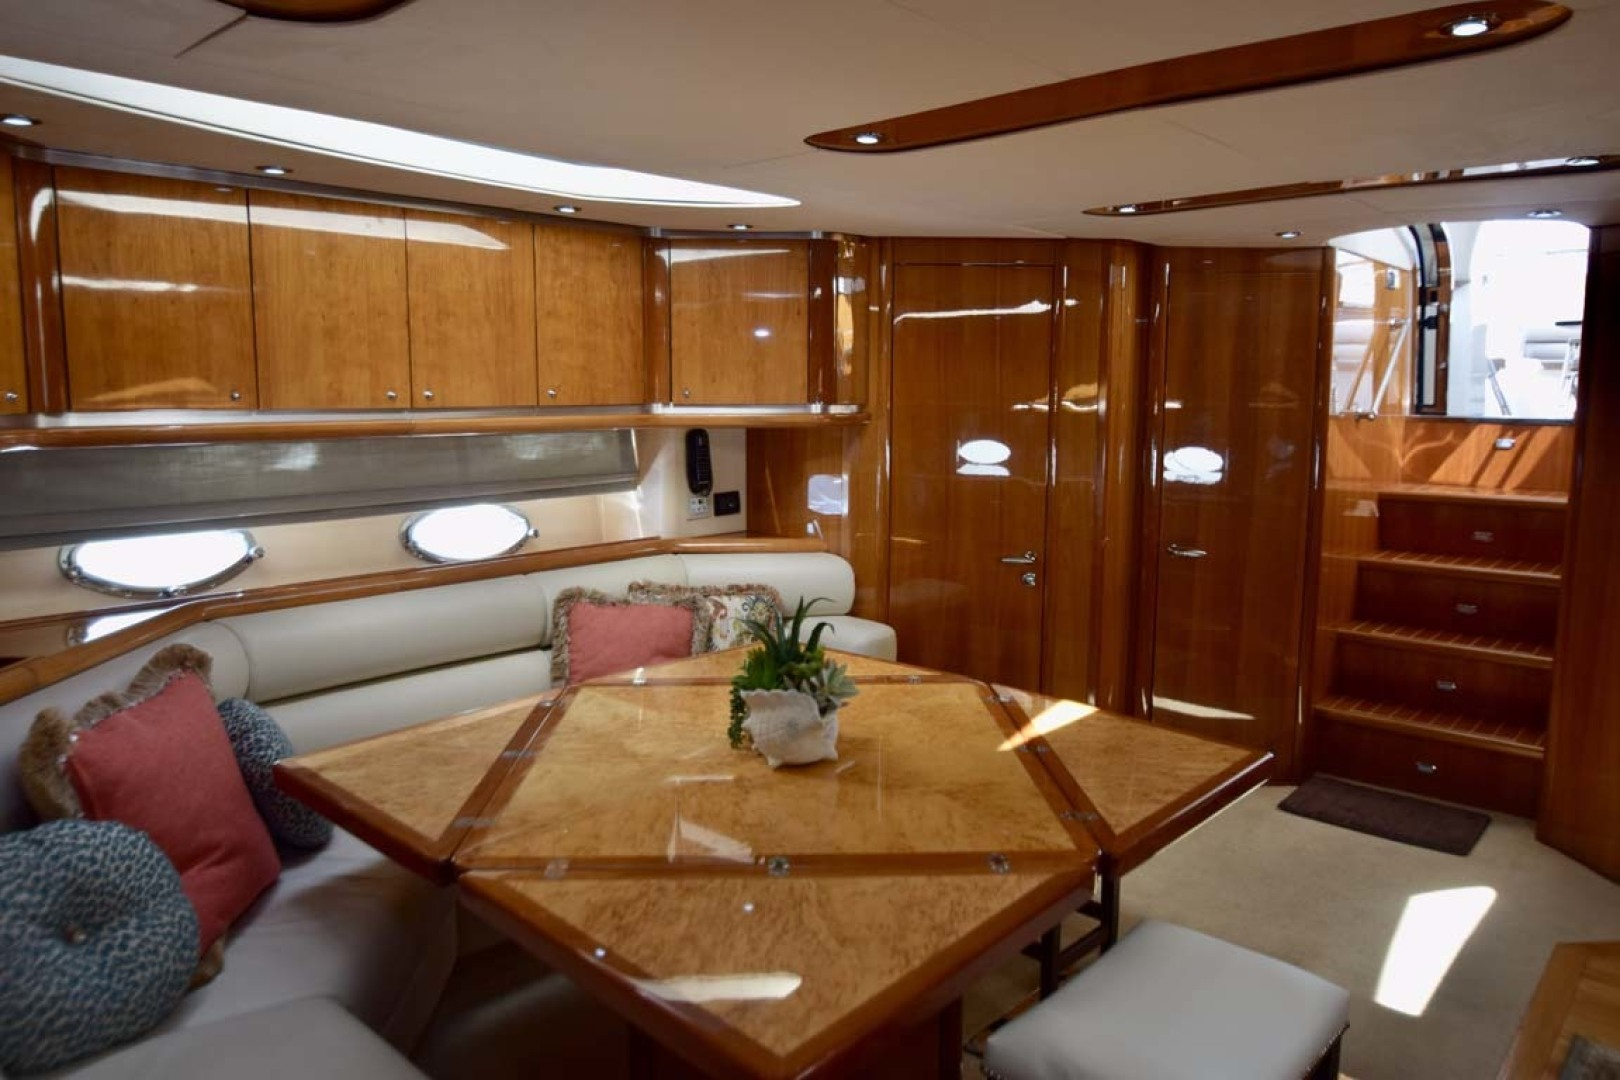 Sunseeker-Predator 2003-Low Profile PALM BEACH-Florida-United States-Main Salon With Extended Table From Port To Stbd. View-1576342 | Thumbnail